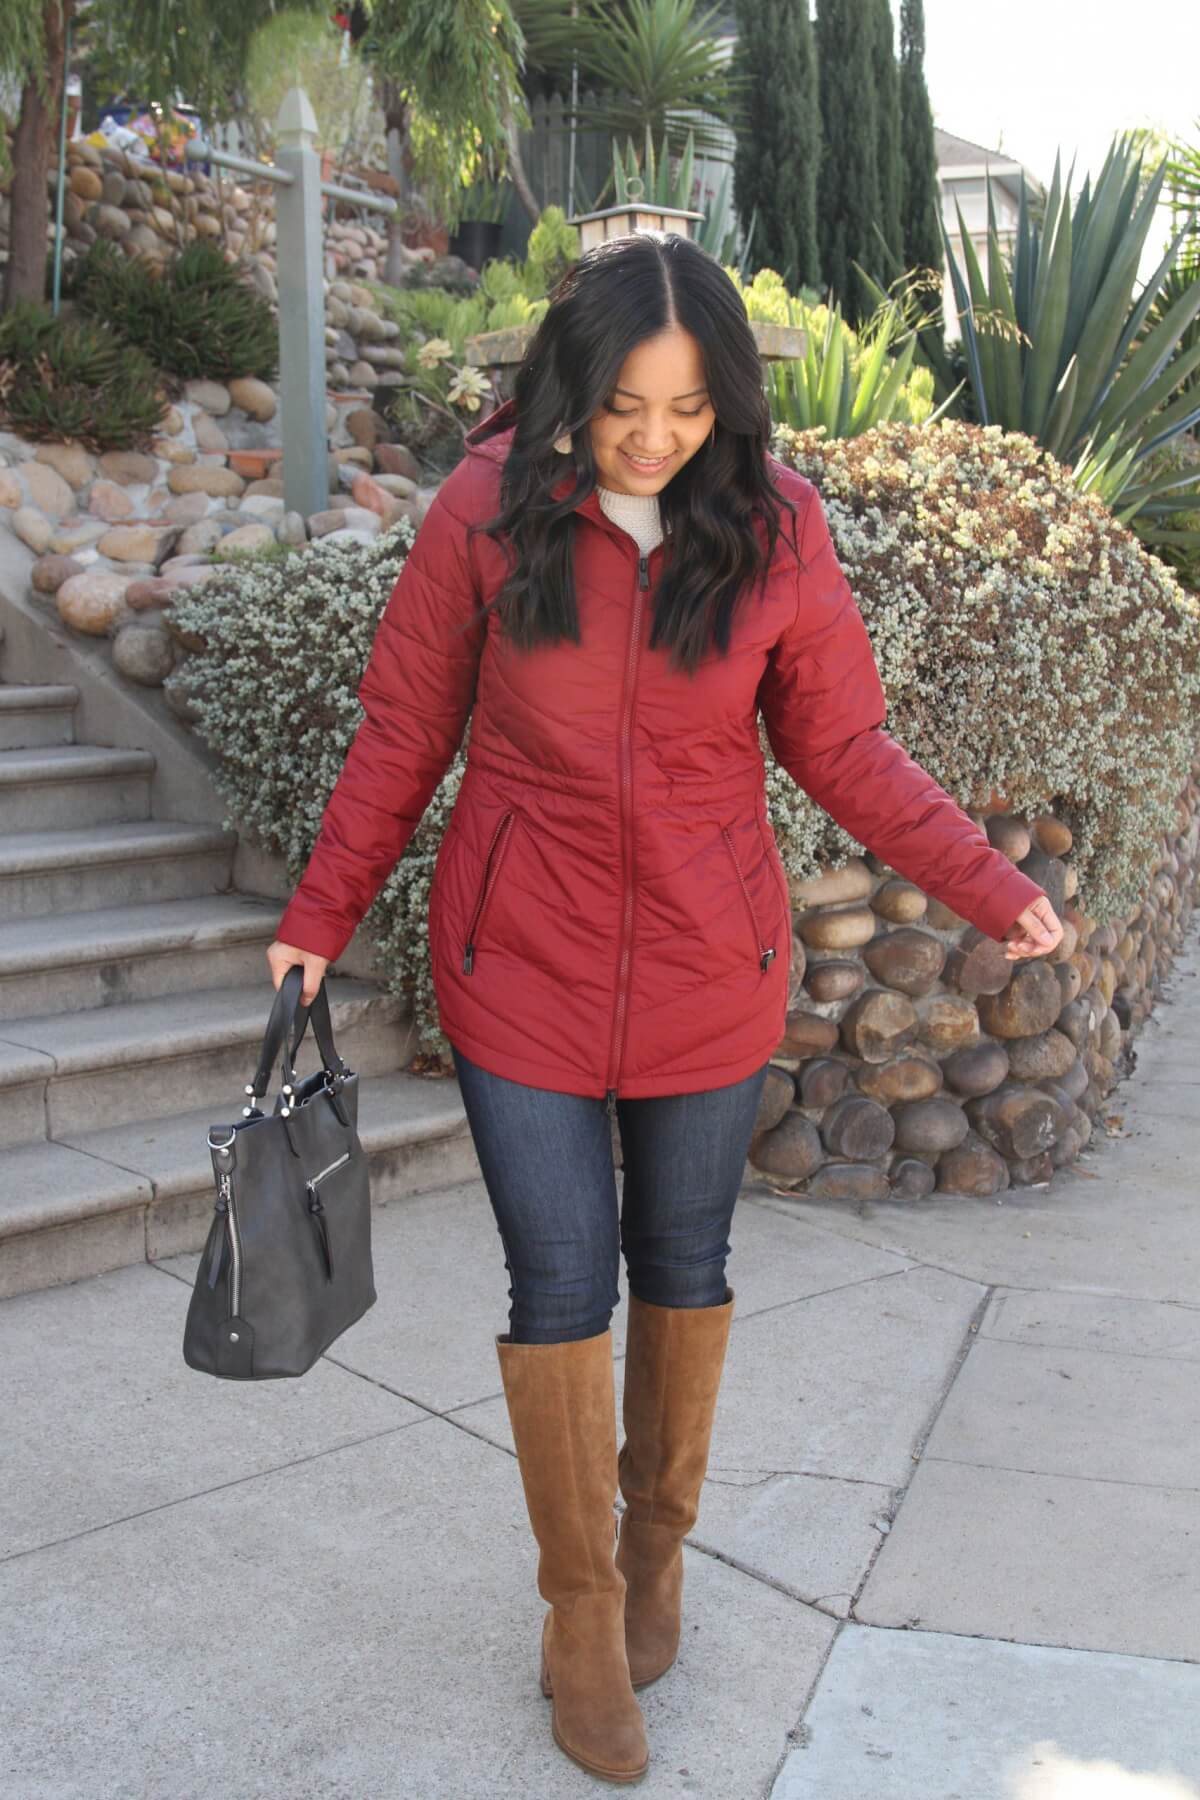 Casual Winter Outfit: red puffer jacket + white sweater + tan suede boots + skinny jeans + cream leather earrings + dark grey bag